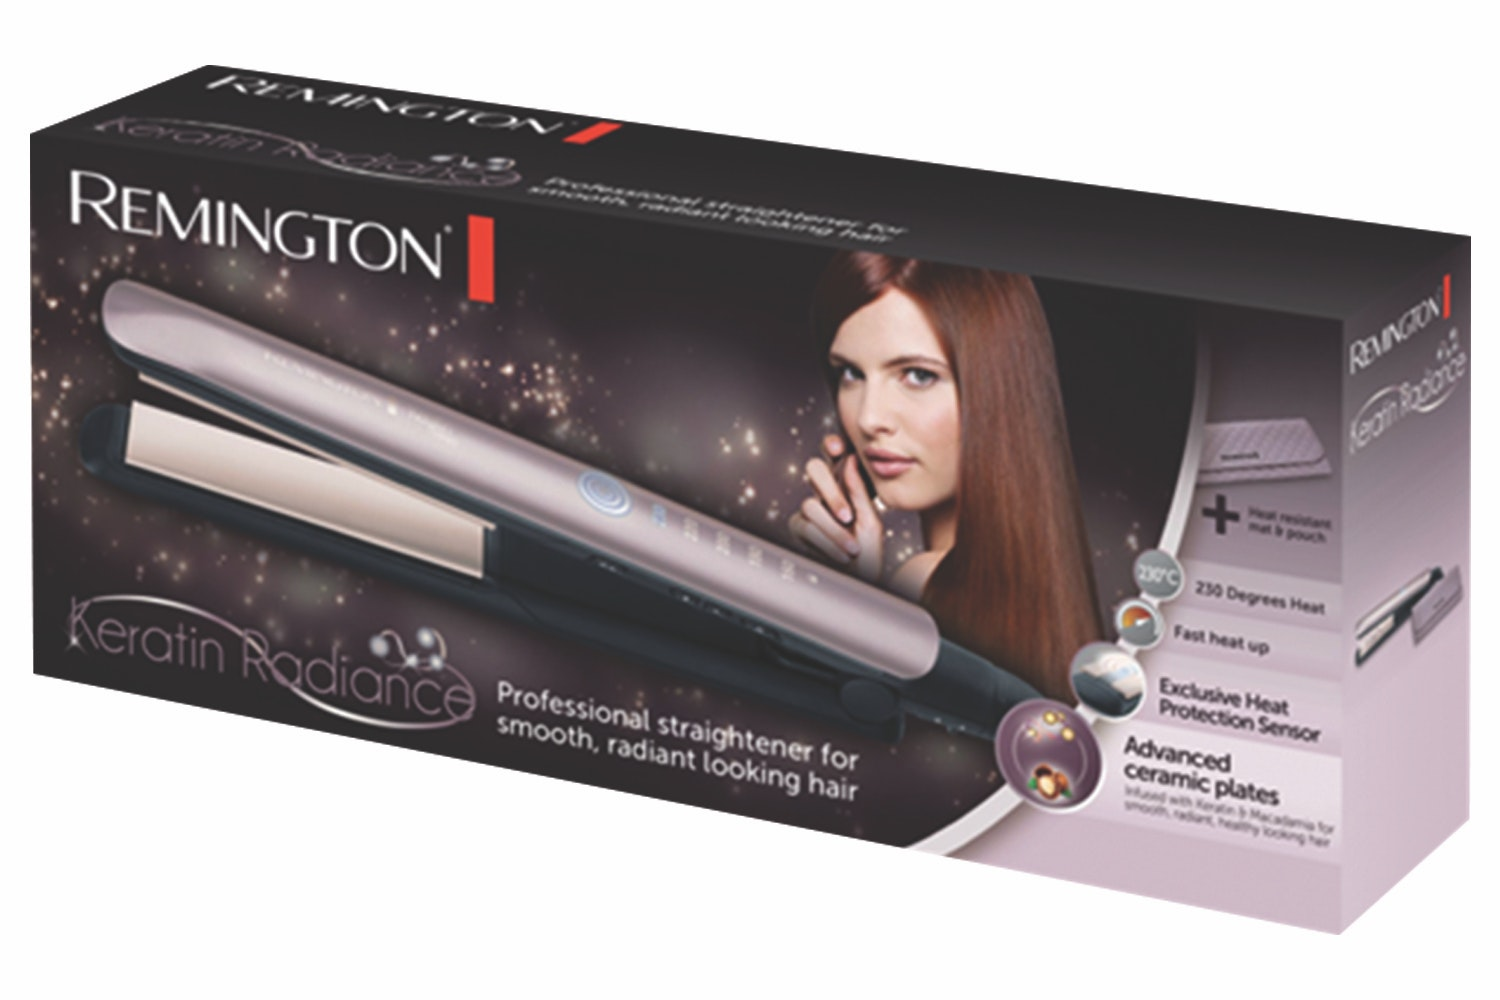 Remington Keratin Radiance Straightner